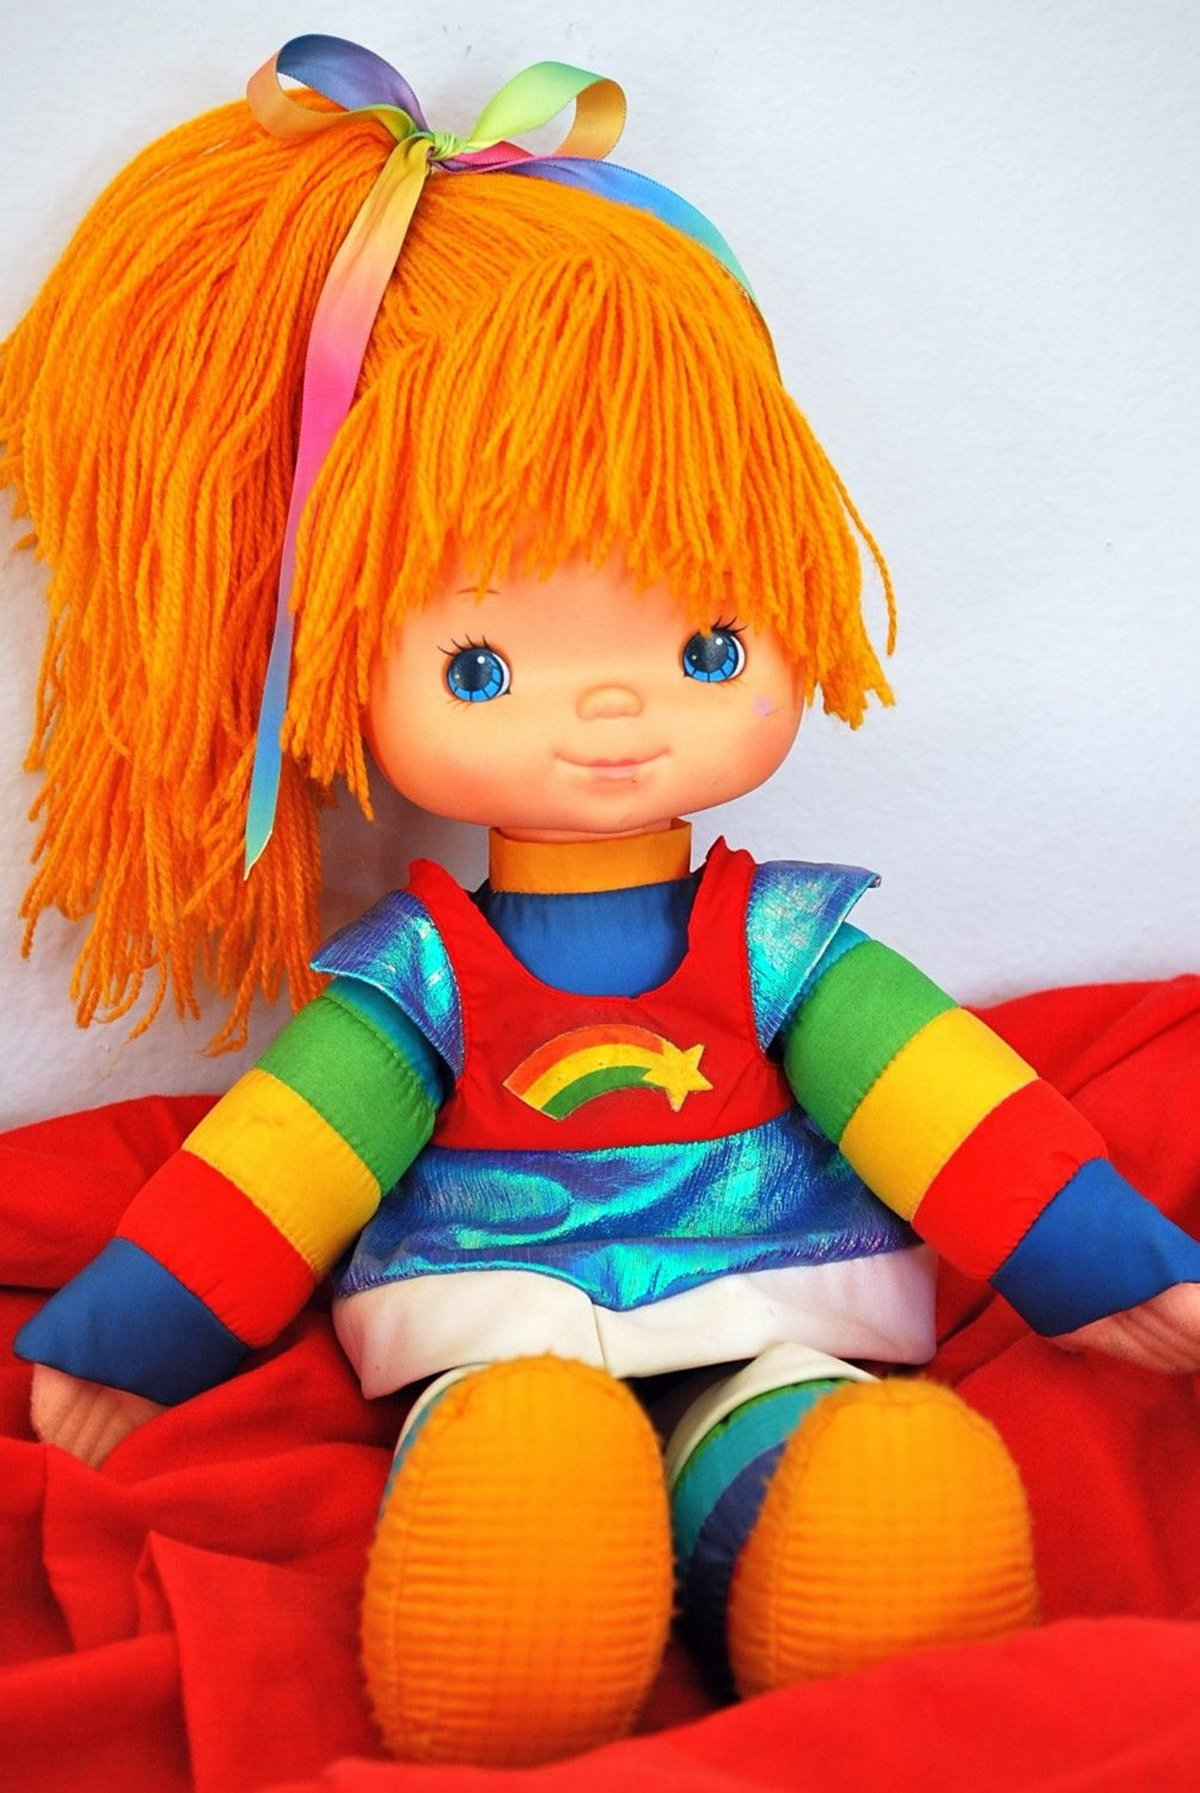 6 10 10 Cuddly Toys All 80s Girls Wanted!